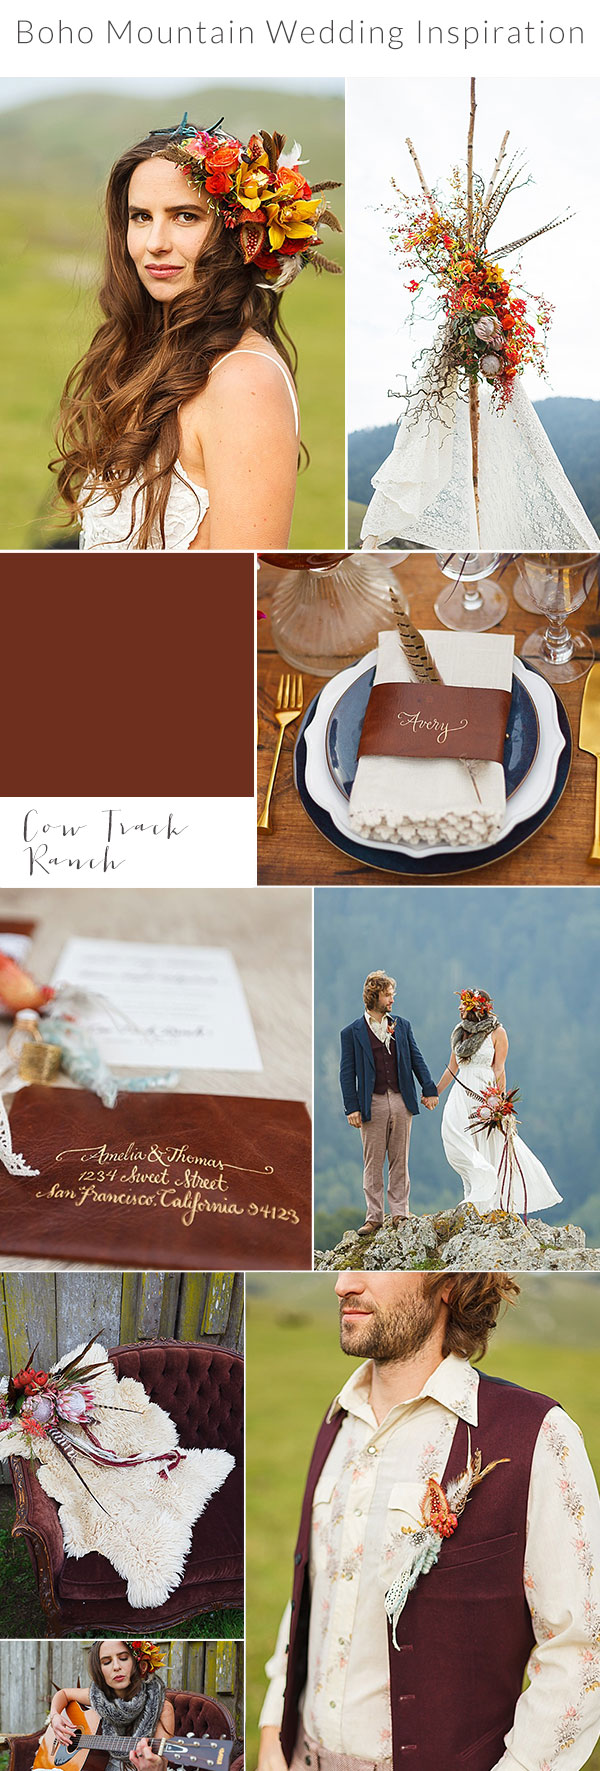 Inspiration Board Boho Mountain Wedding Inspiration Bergreen Photography